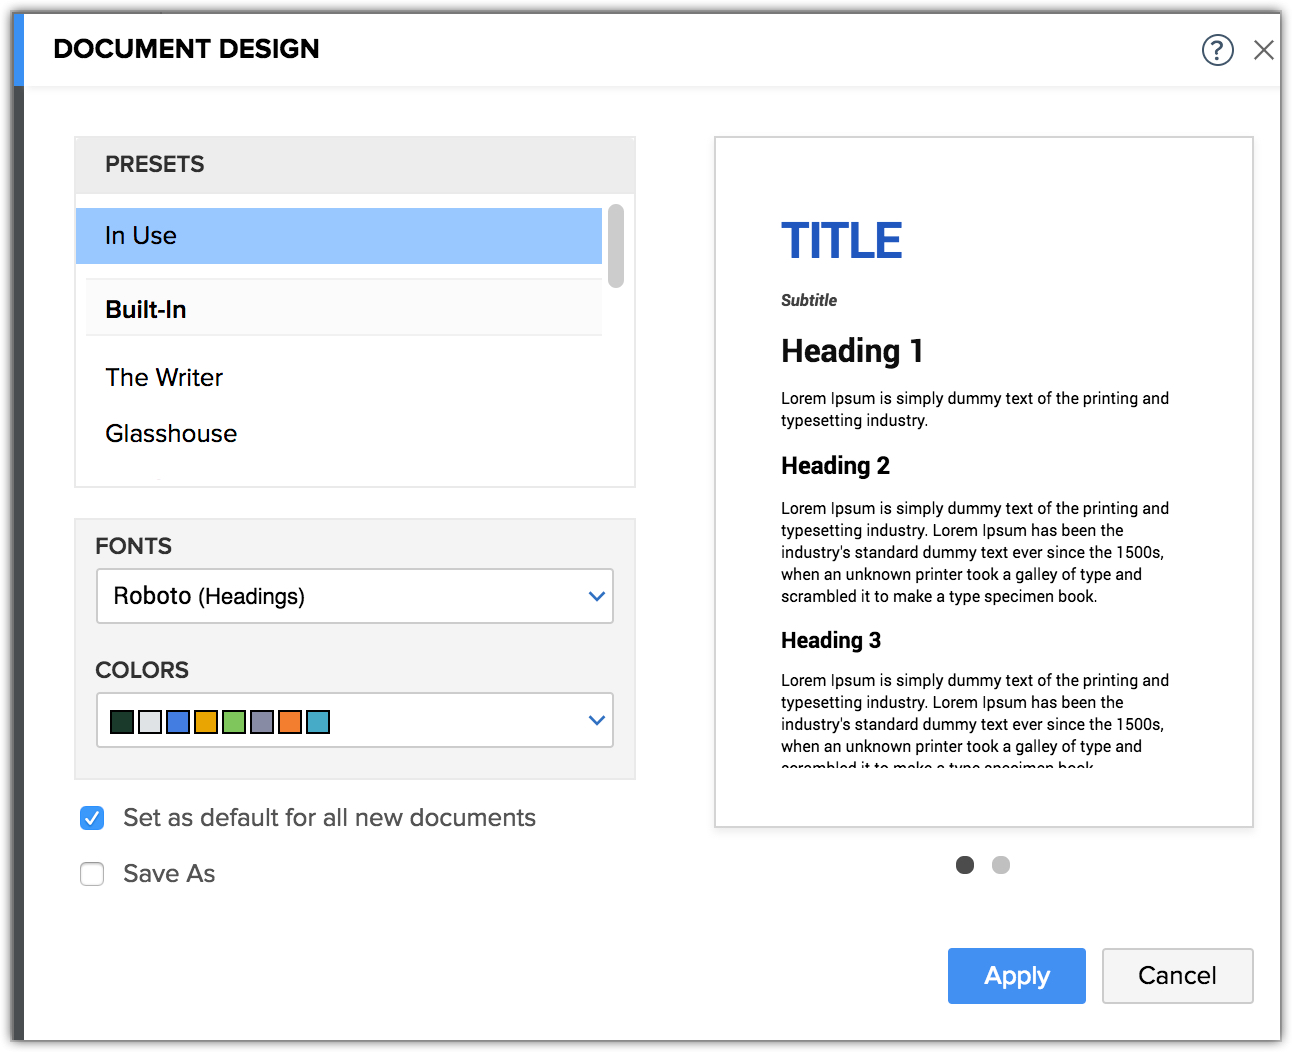 How to customize document design?